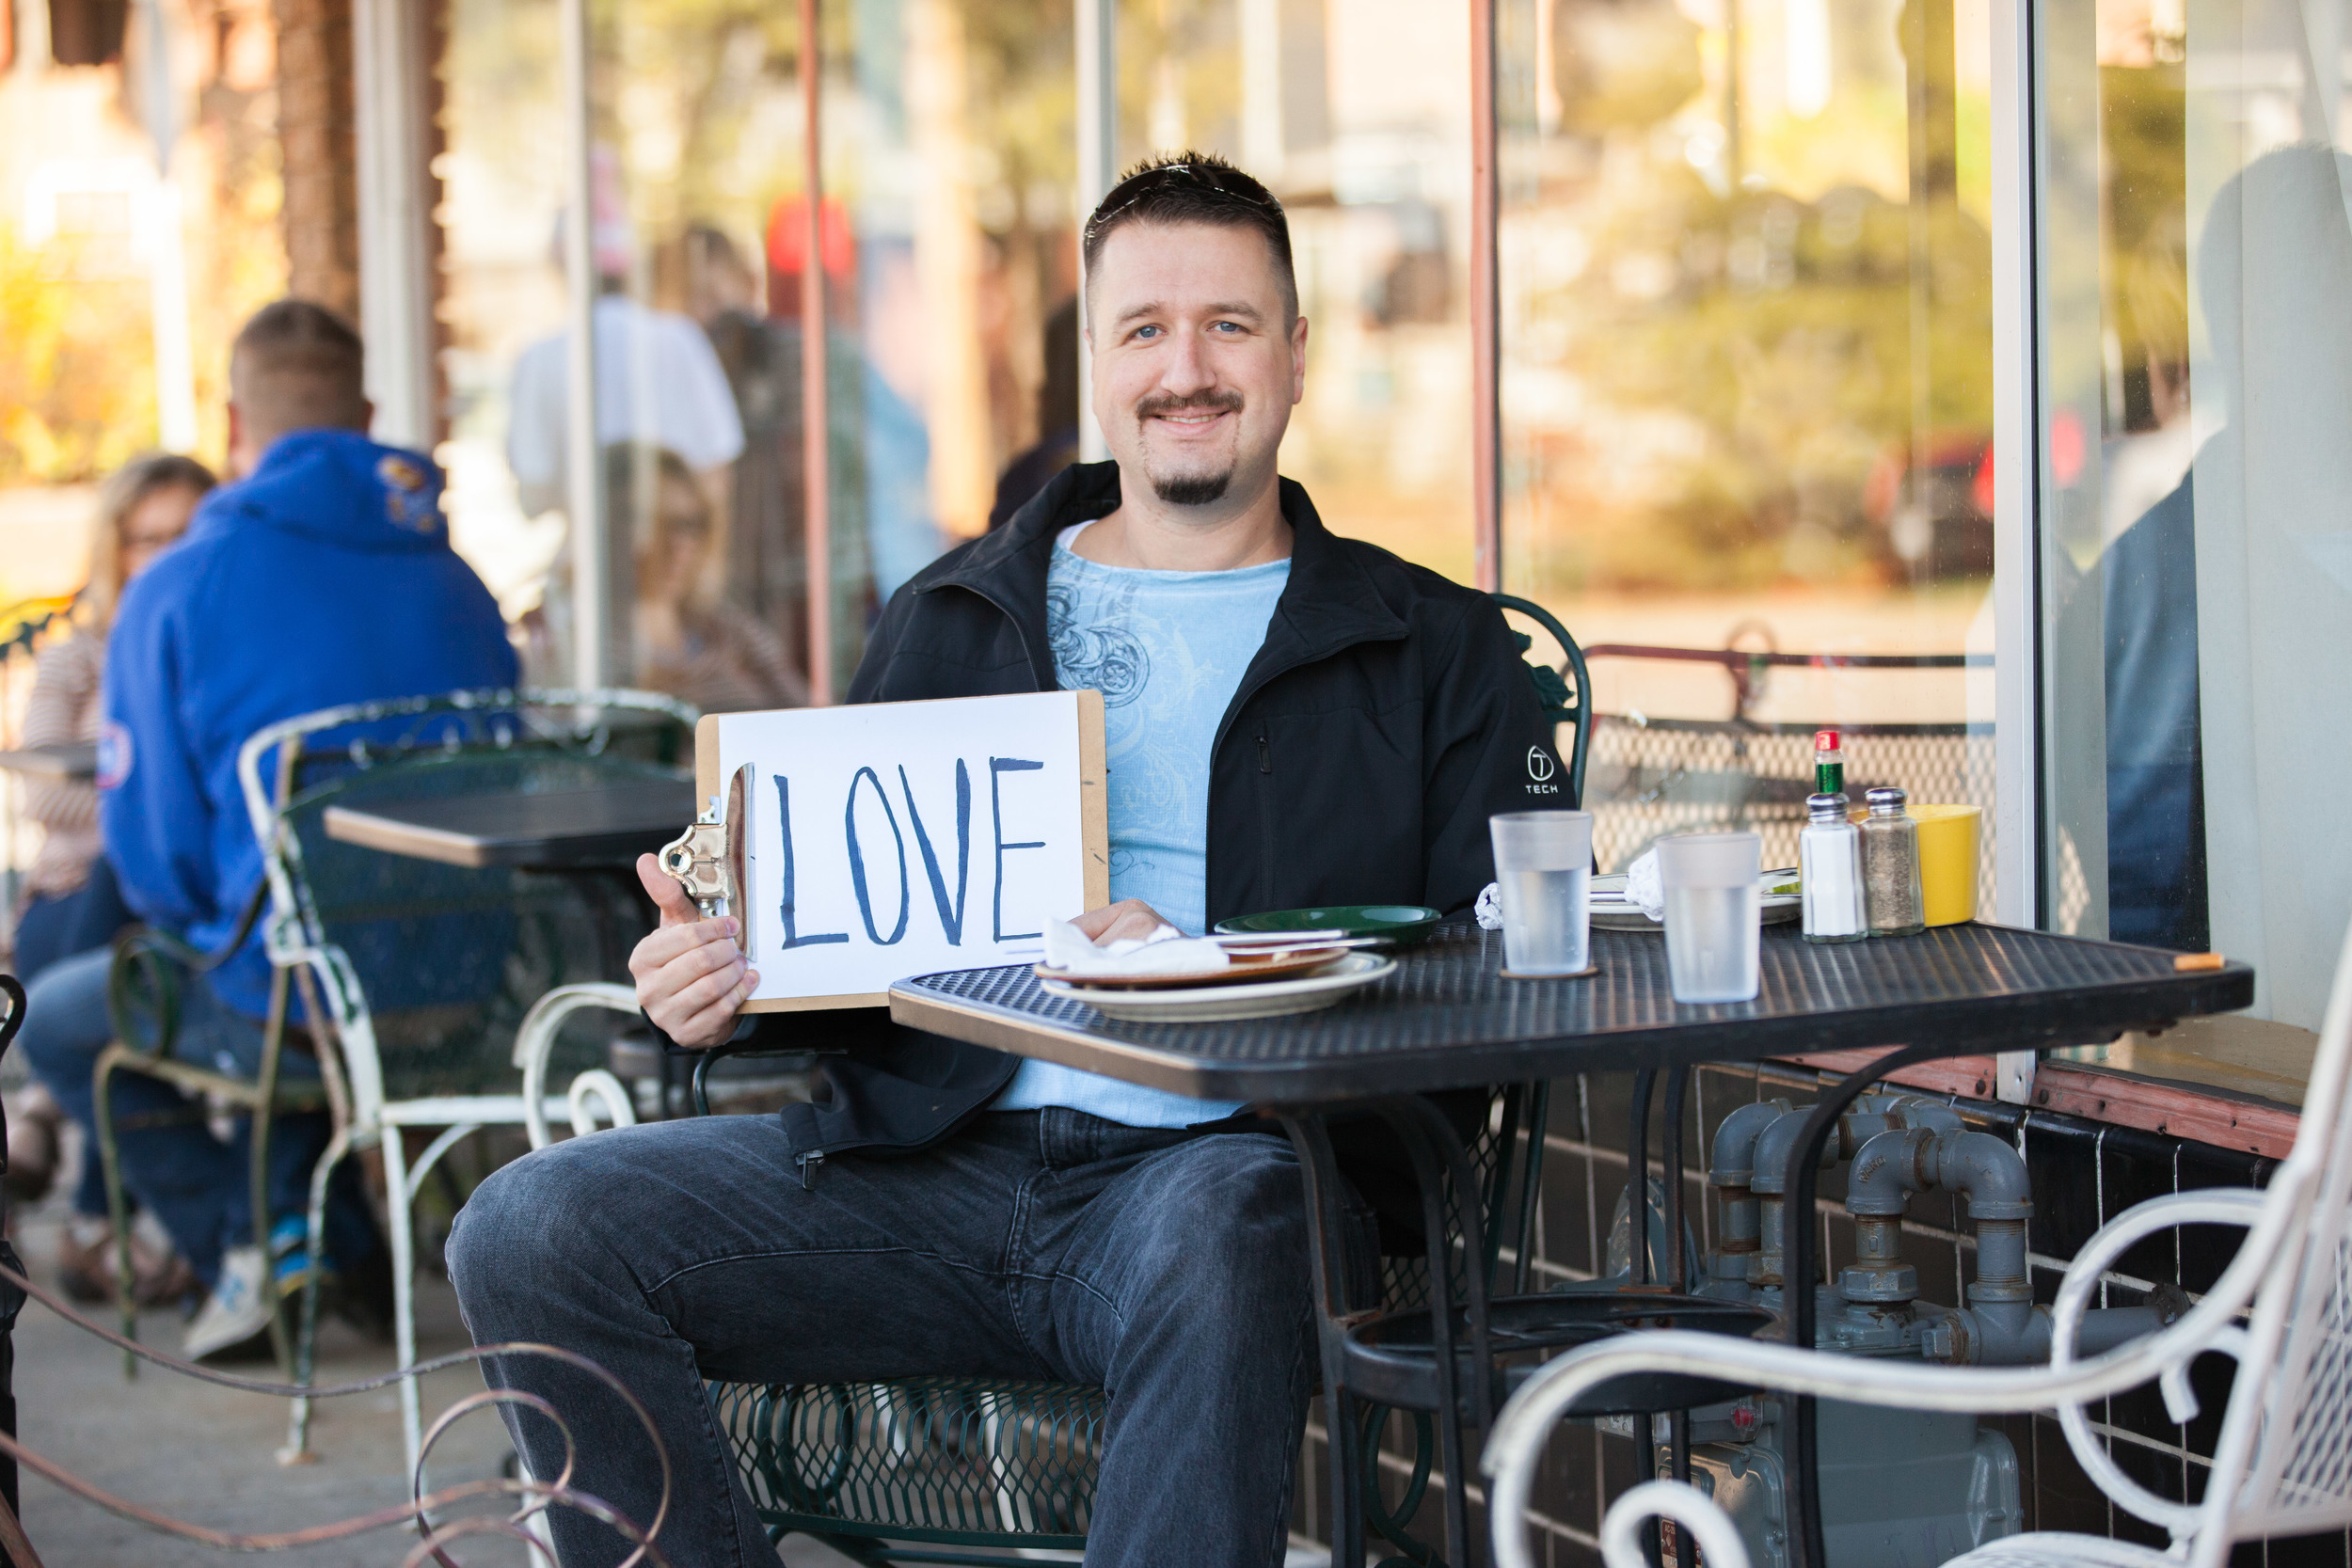 Man sitting at a cafe holding a sign that says love.